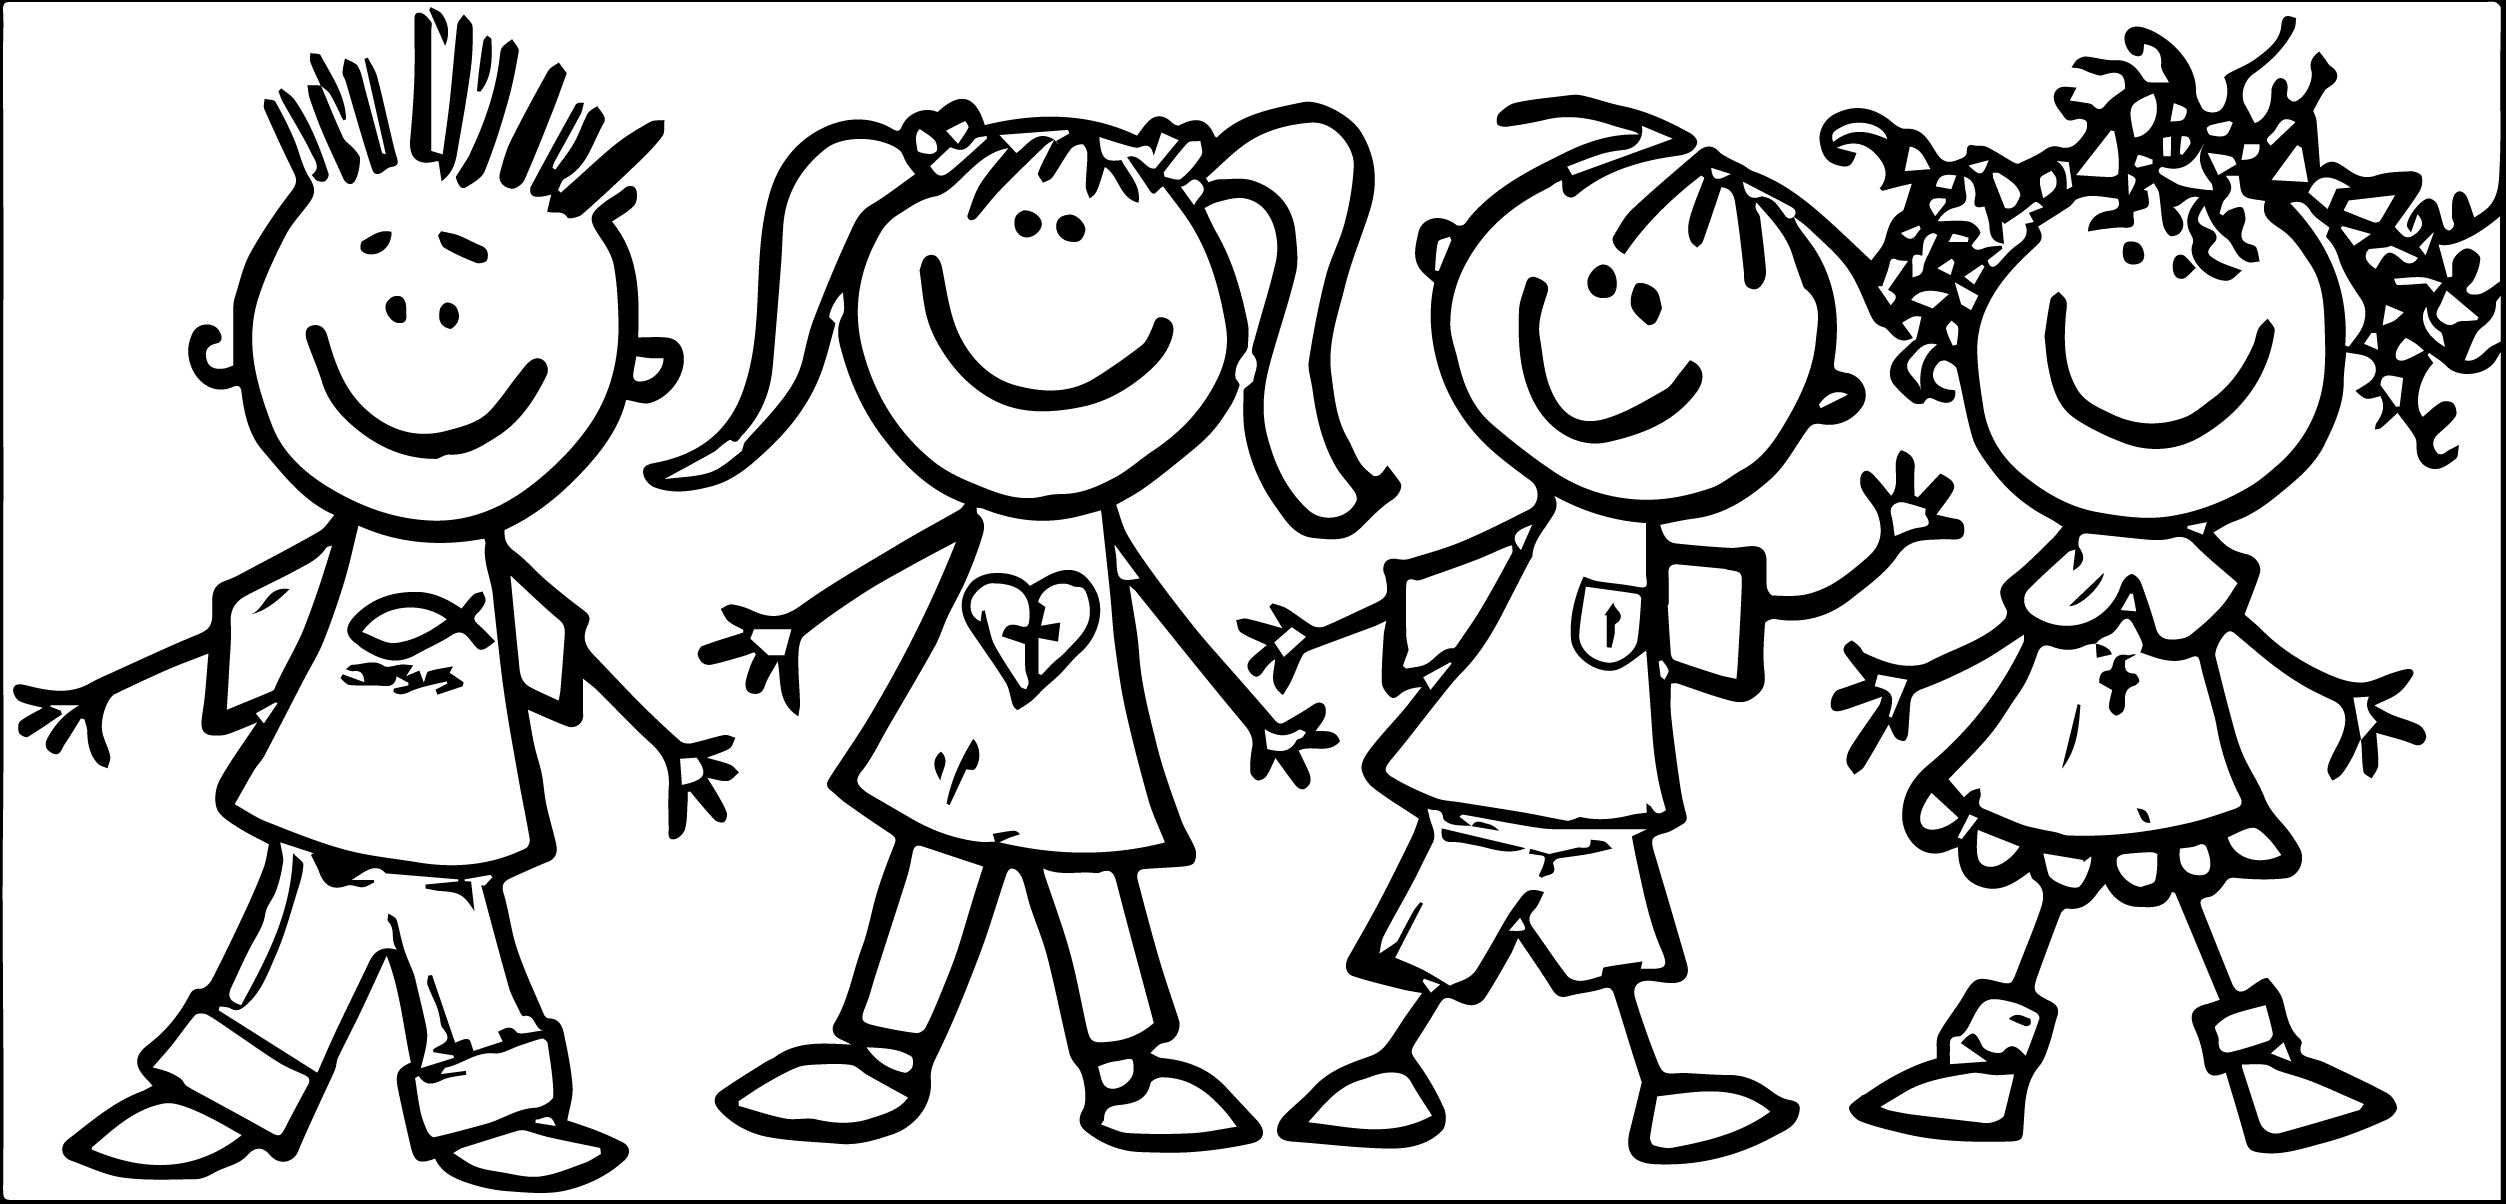 Kids being kind clipart black and white graphic free Happy Kids Clipart Black And White | Letters within Happy ... graphic free